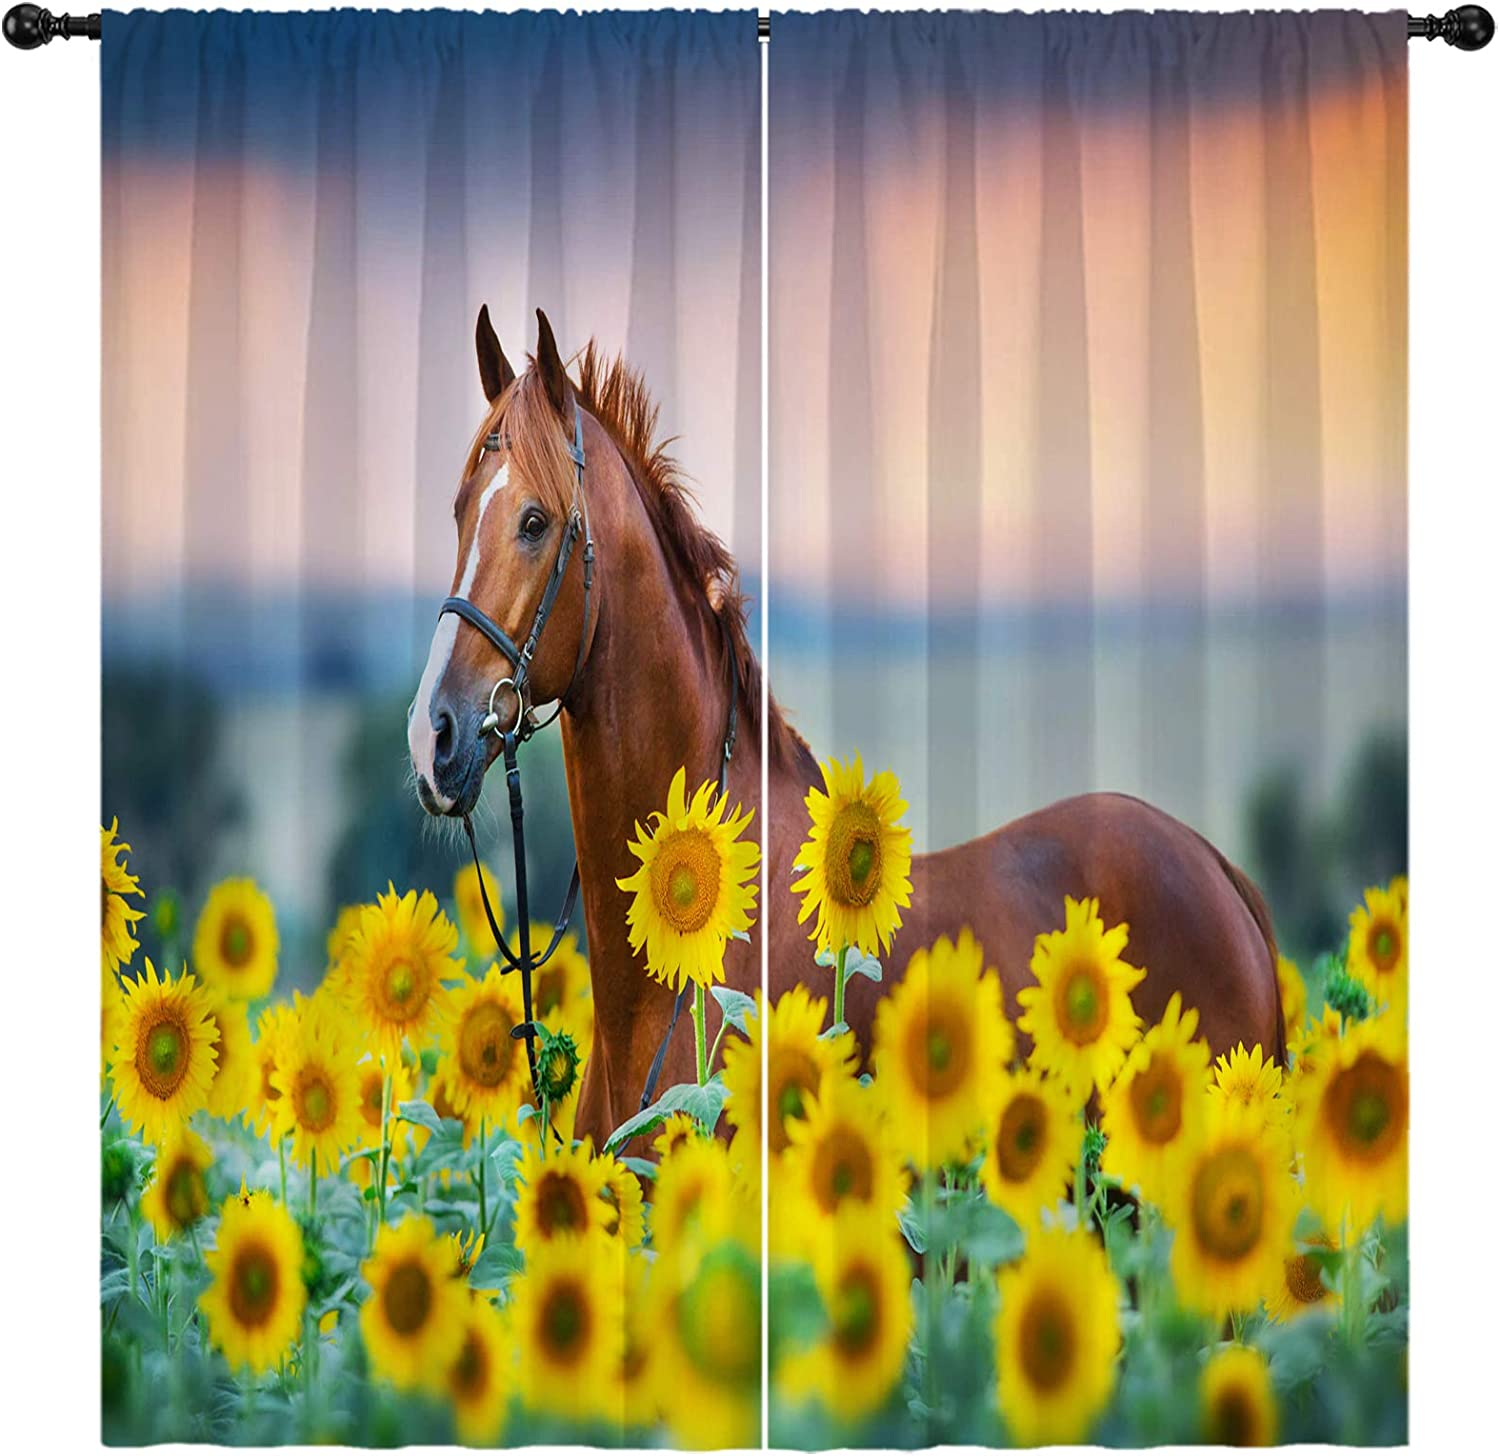 boenkj Horse Curtains for Girls in Max 85% OFF Running Sunflo Bedroom Super beauty product restock quality top Horses